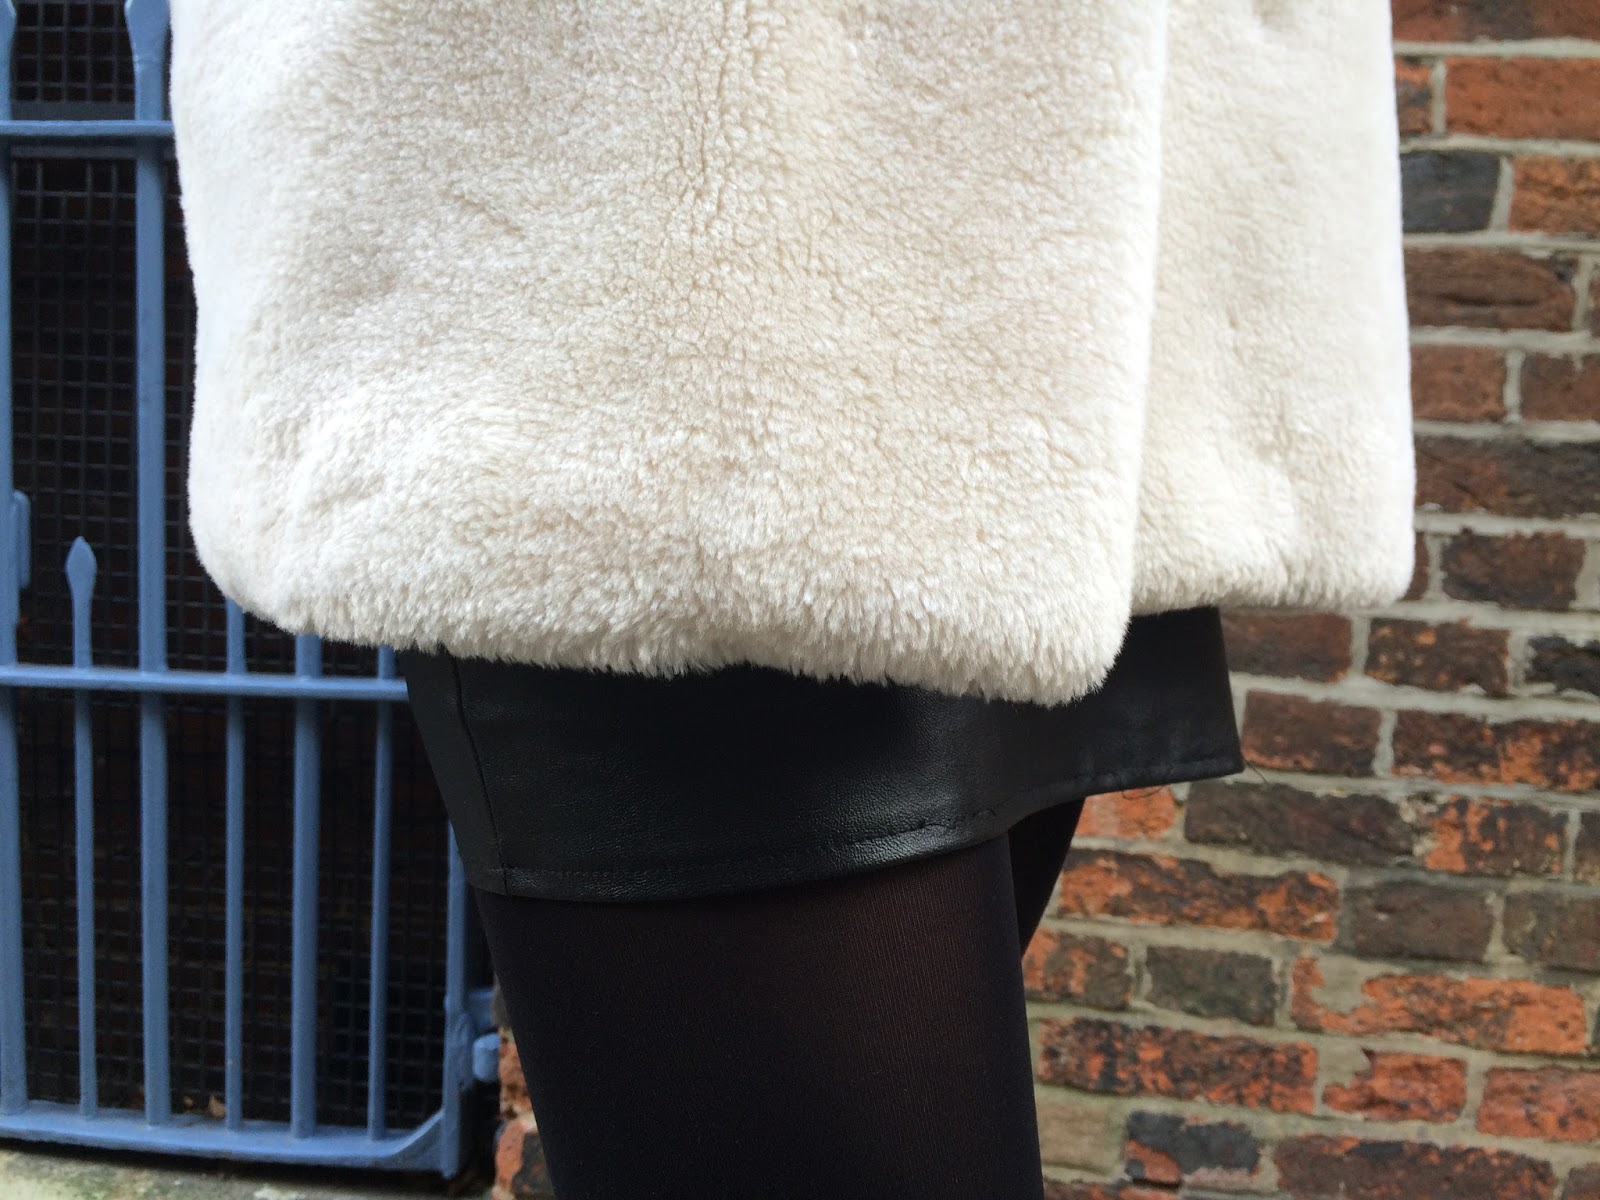 ootd, outfit post, street style, fashion blogger, look, topshop